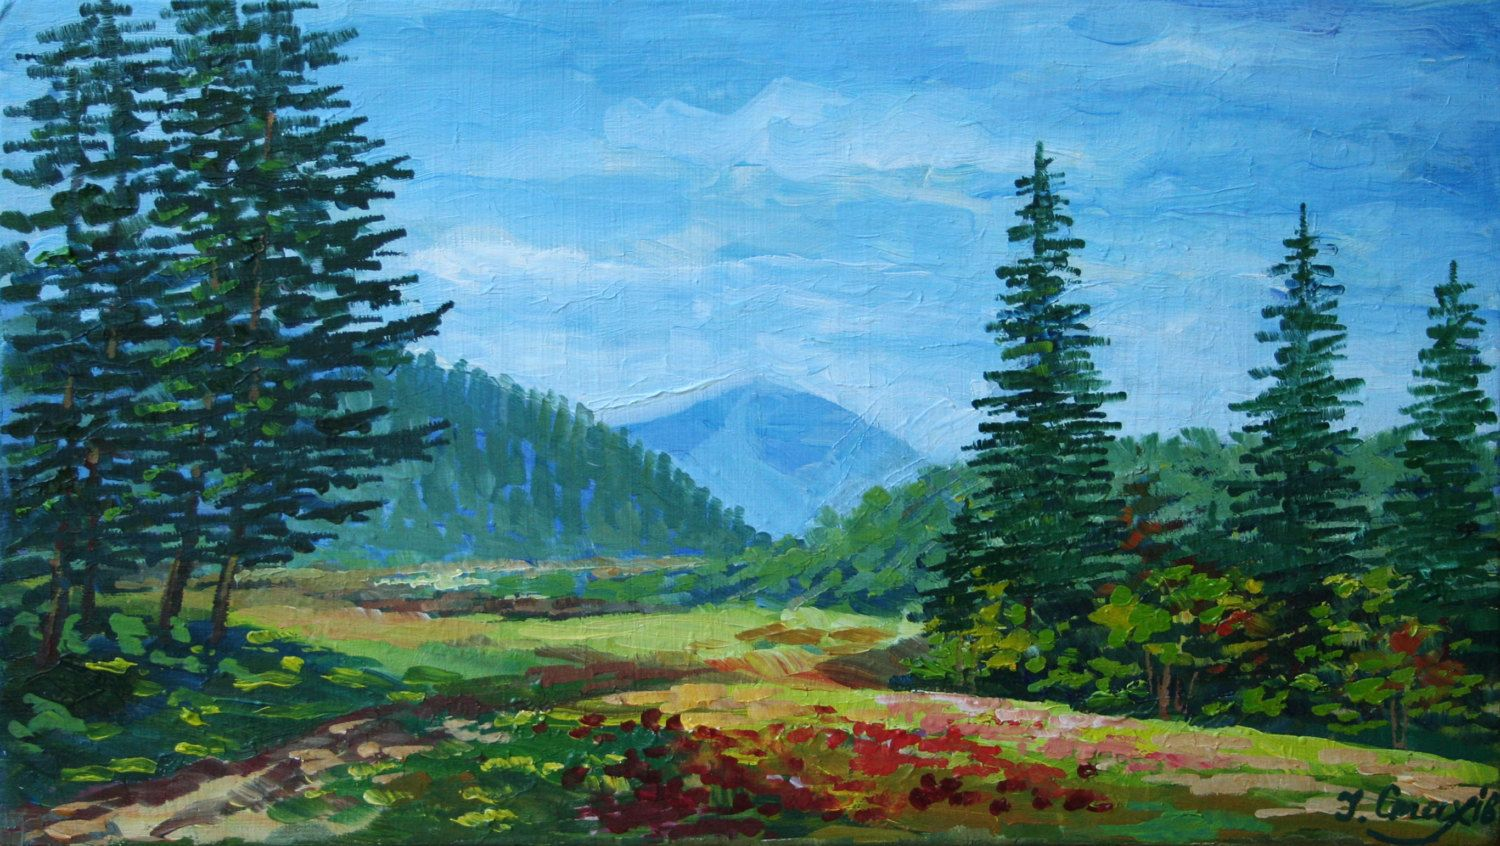 Landscape Oil Painting Nature Artwork Original Painting Scenery Painting Wall Art Small Forma Scenery Paintings Oil Painting Landscape Oil Painting Nature